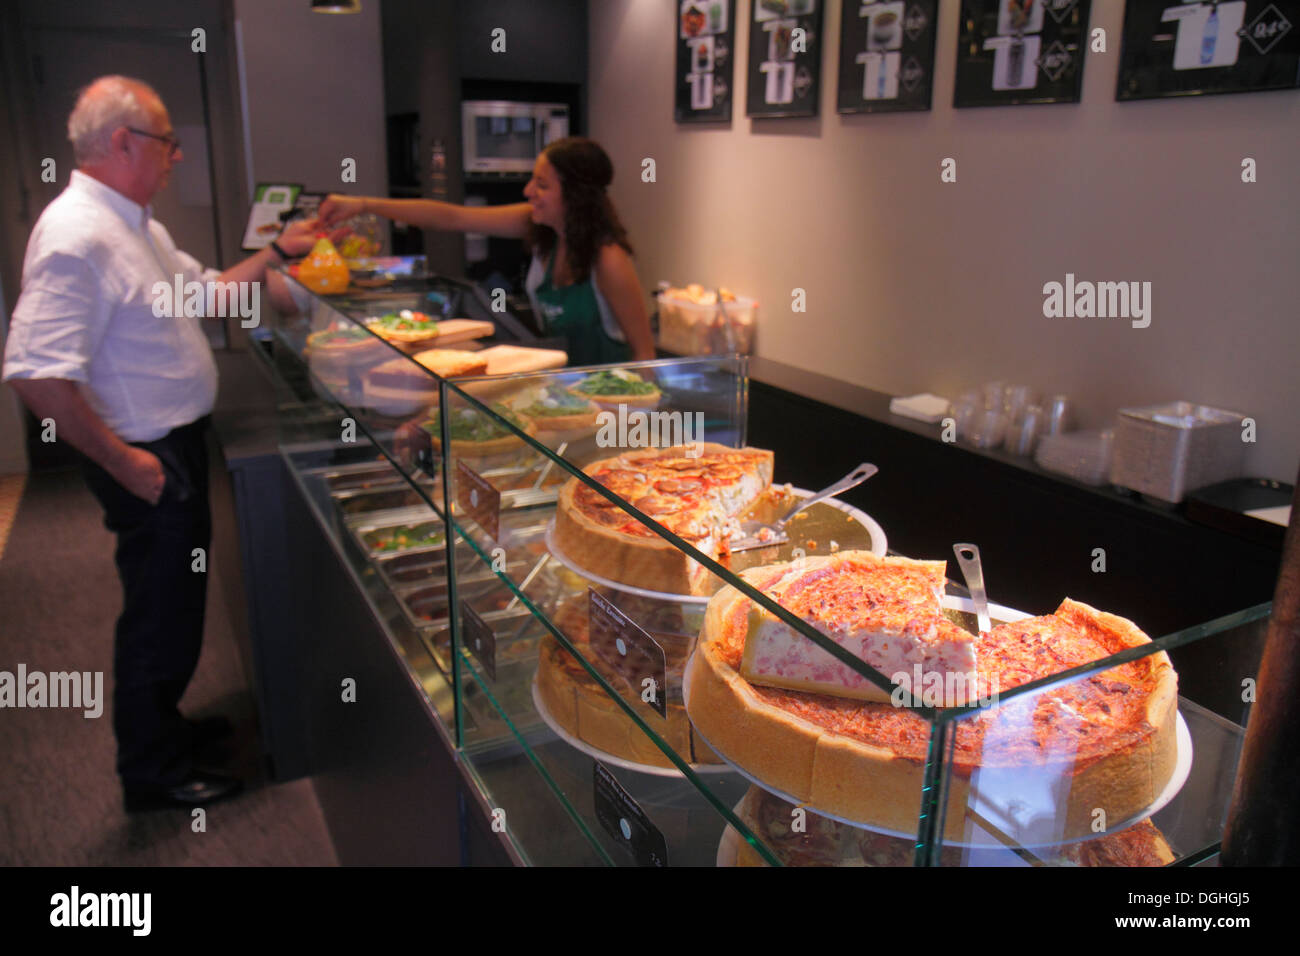 Paris France Europe French 9th arrondissement Rue Blanche quiche food display cafe brasserie restaurant customer employee man wo - Stock Image